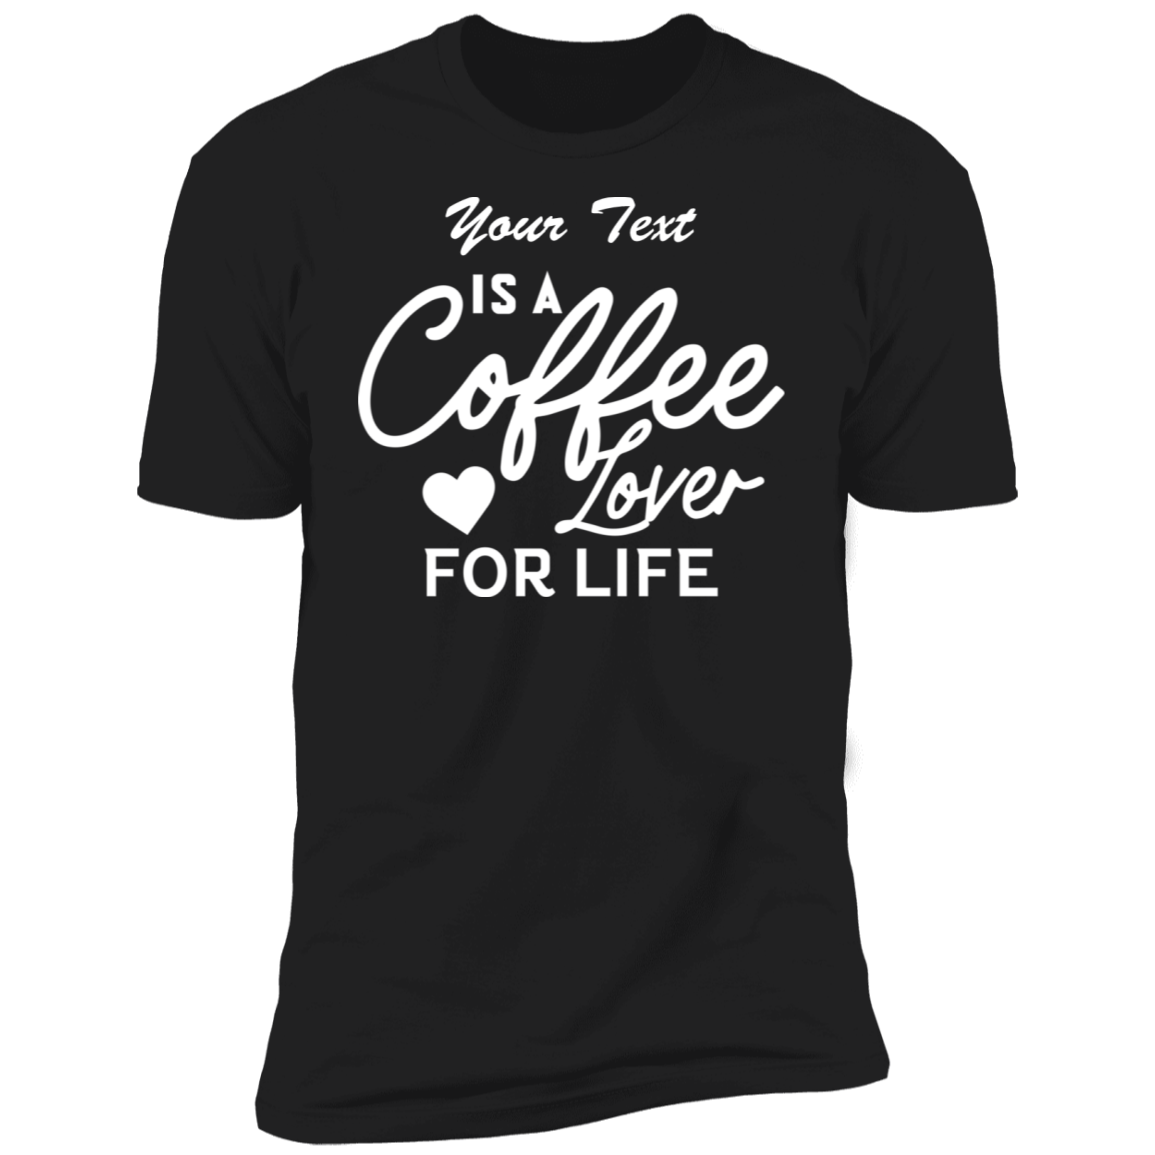 Coffee Lover For Life T-Shirt